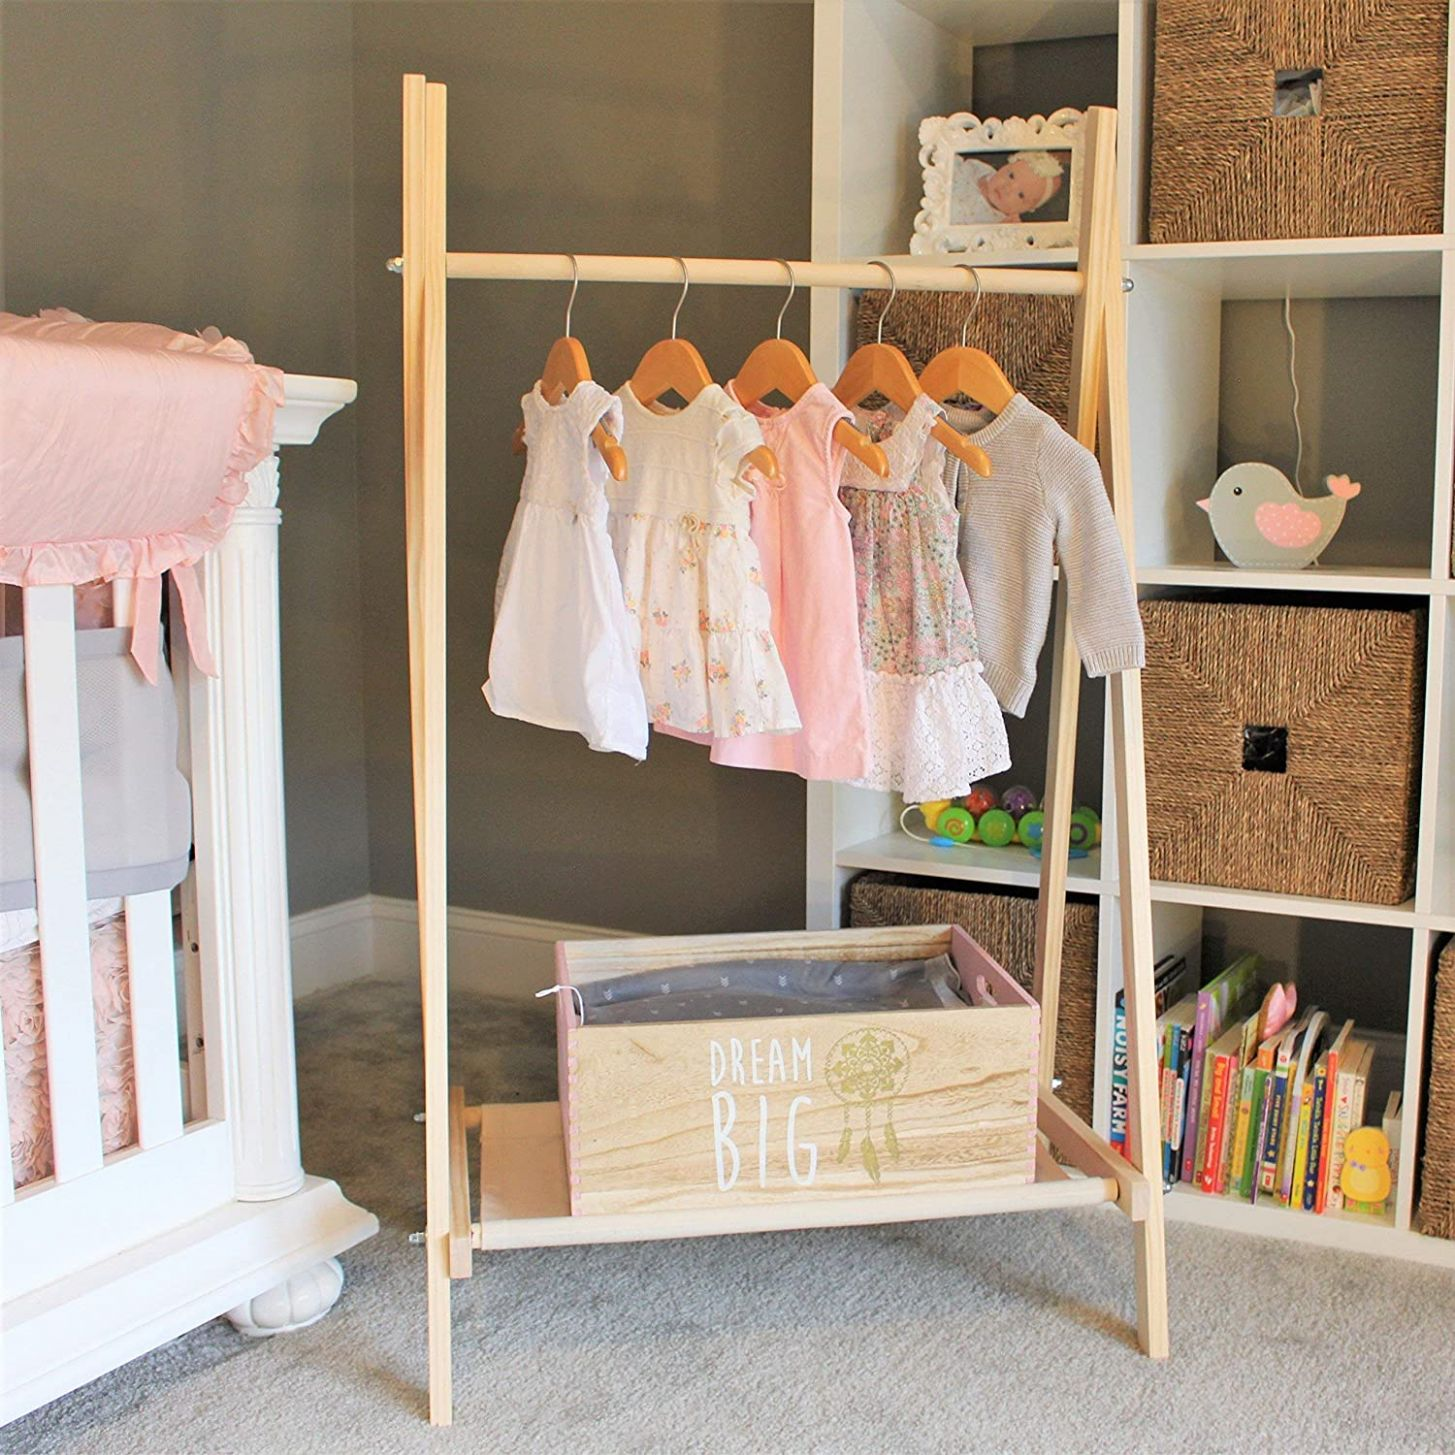 Amazon.com: Clothing Rack, Kids Room Decor, Nursery Organization ...